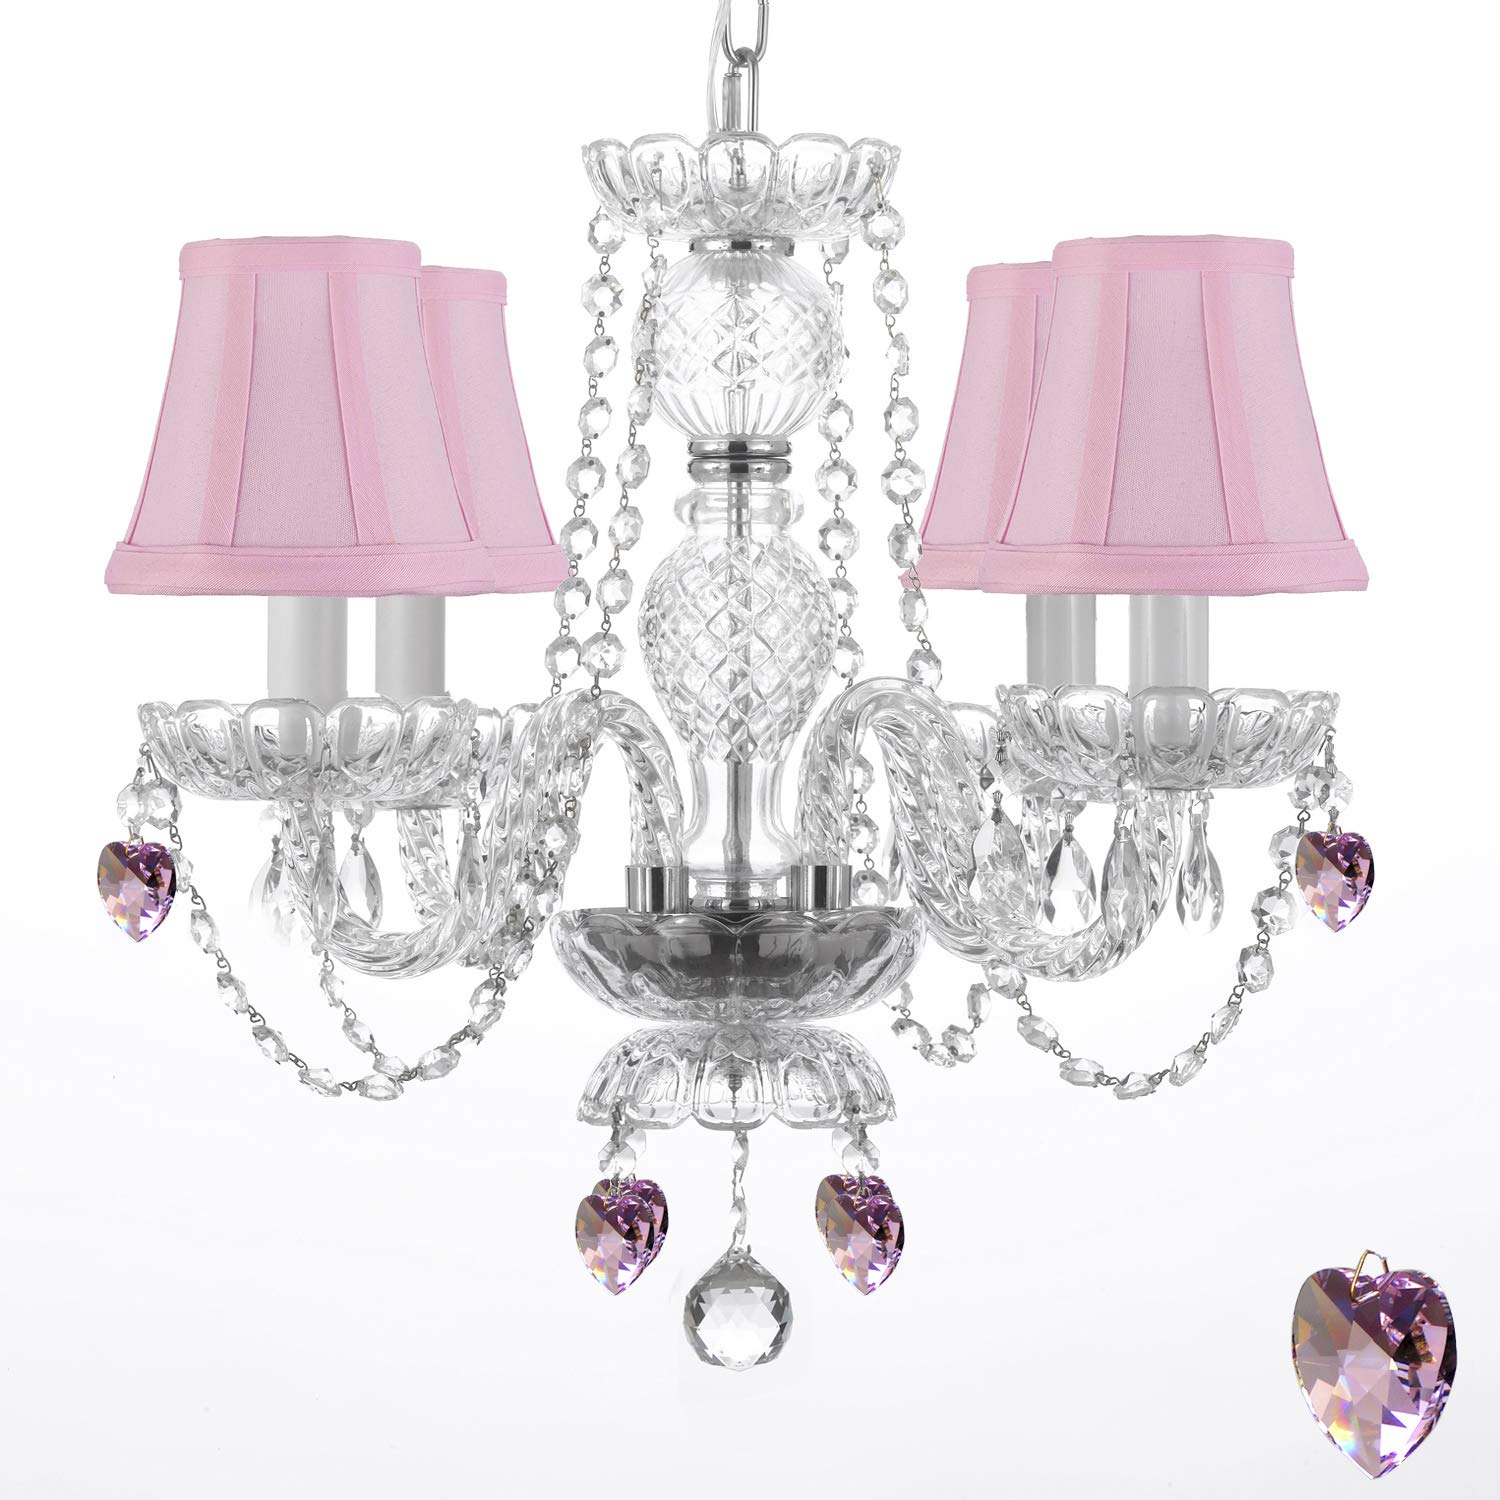 "CHANDELIER LIGHTING W CRYSTAL PINK SHADES & HEARTS H 17"" PERFECT"